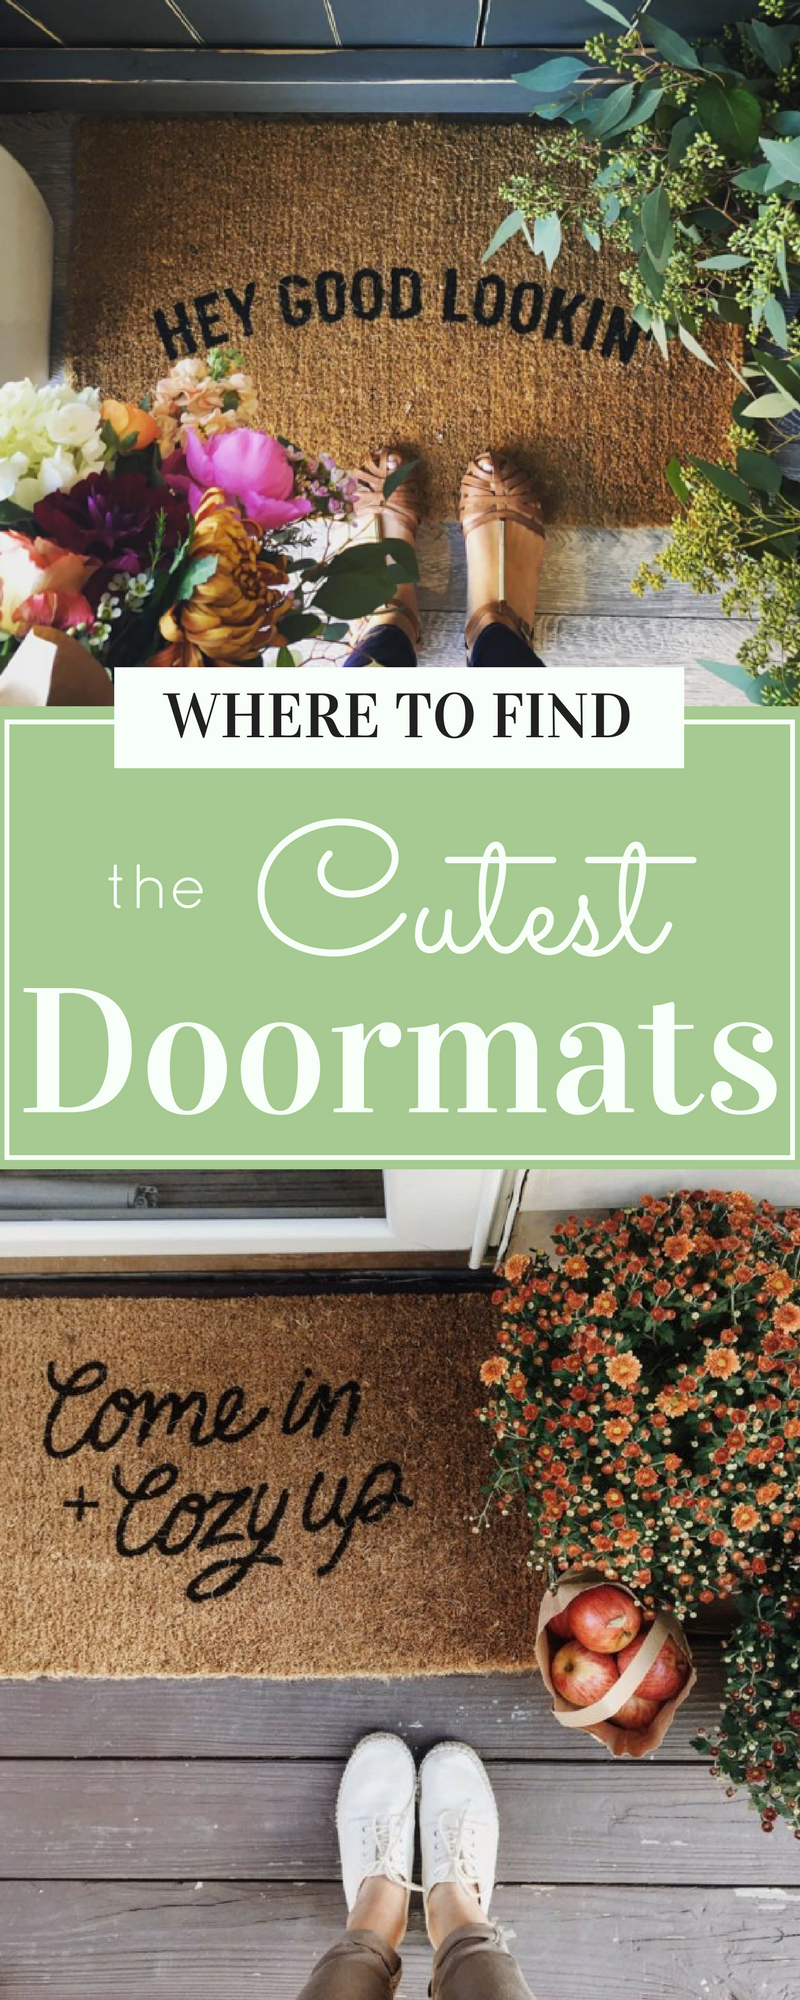 Make a great first impression with these cute + funny doormats to decorate your porch or doorway - so darling! | glitterinc.com | @glitterinc